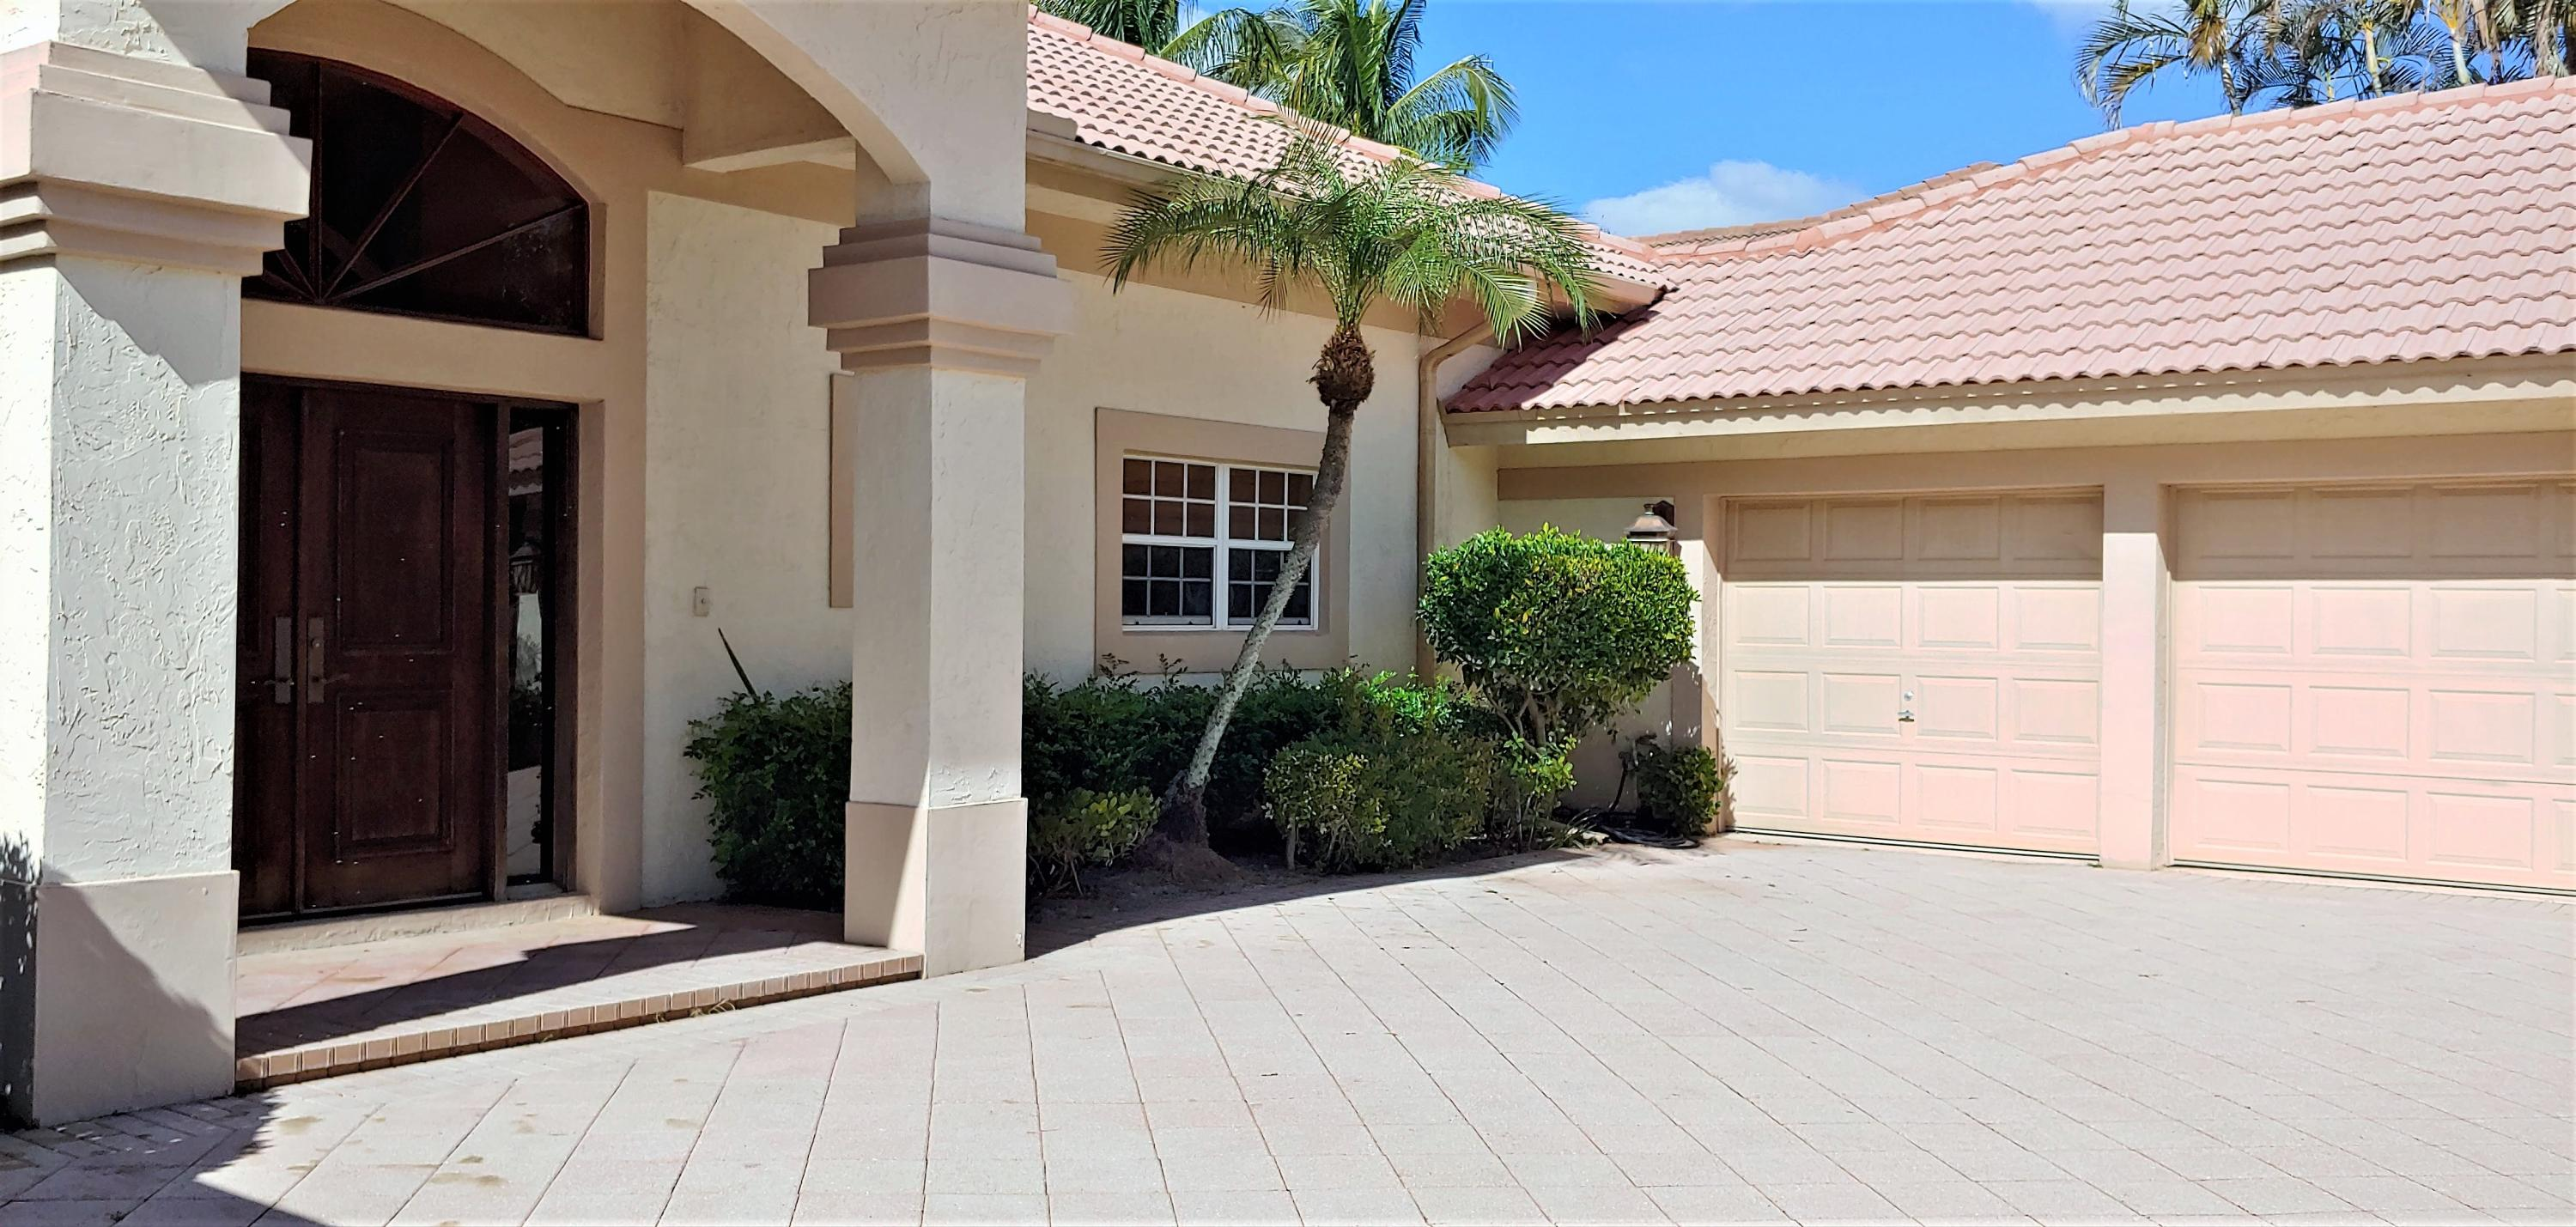 BEAR LAKES WEST PALM BEACH REAL ESTATE